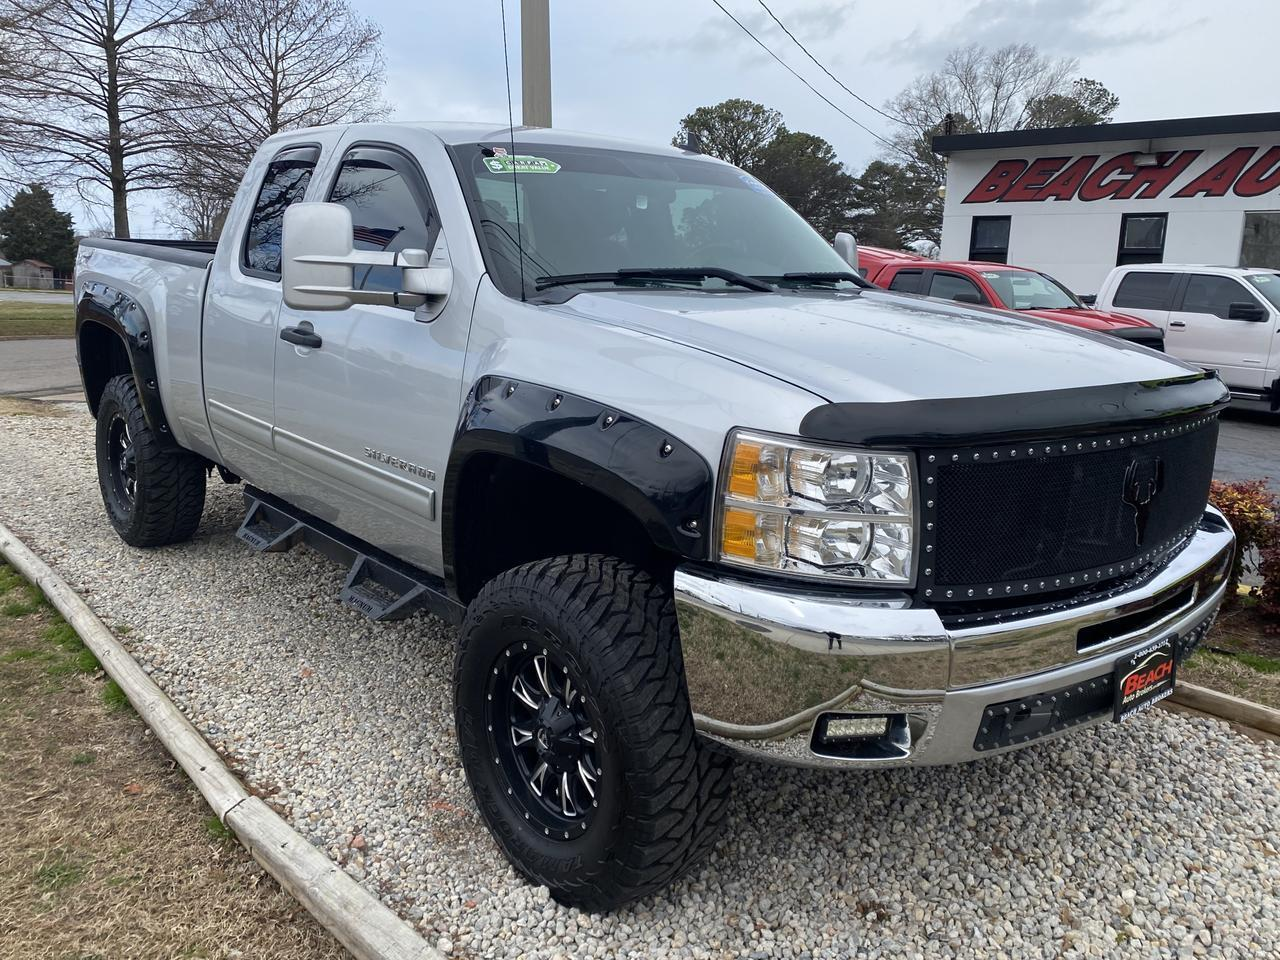 2012 CHEVROLET SILVERADO 1500 LT EXTENDED CAB 4X4, WARRANTY, AUX/USB PORT, BLUETOOTH, SIRIUS RADIO, PARKING SENSORS, CLEAN! Norfolk VA